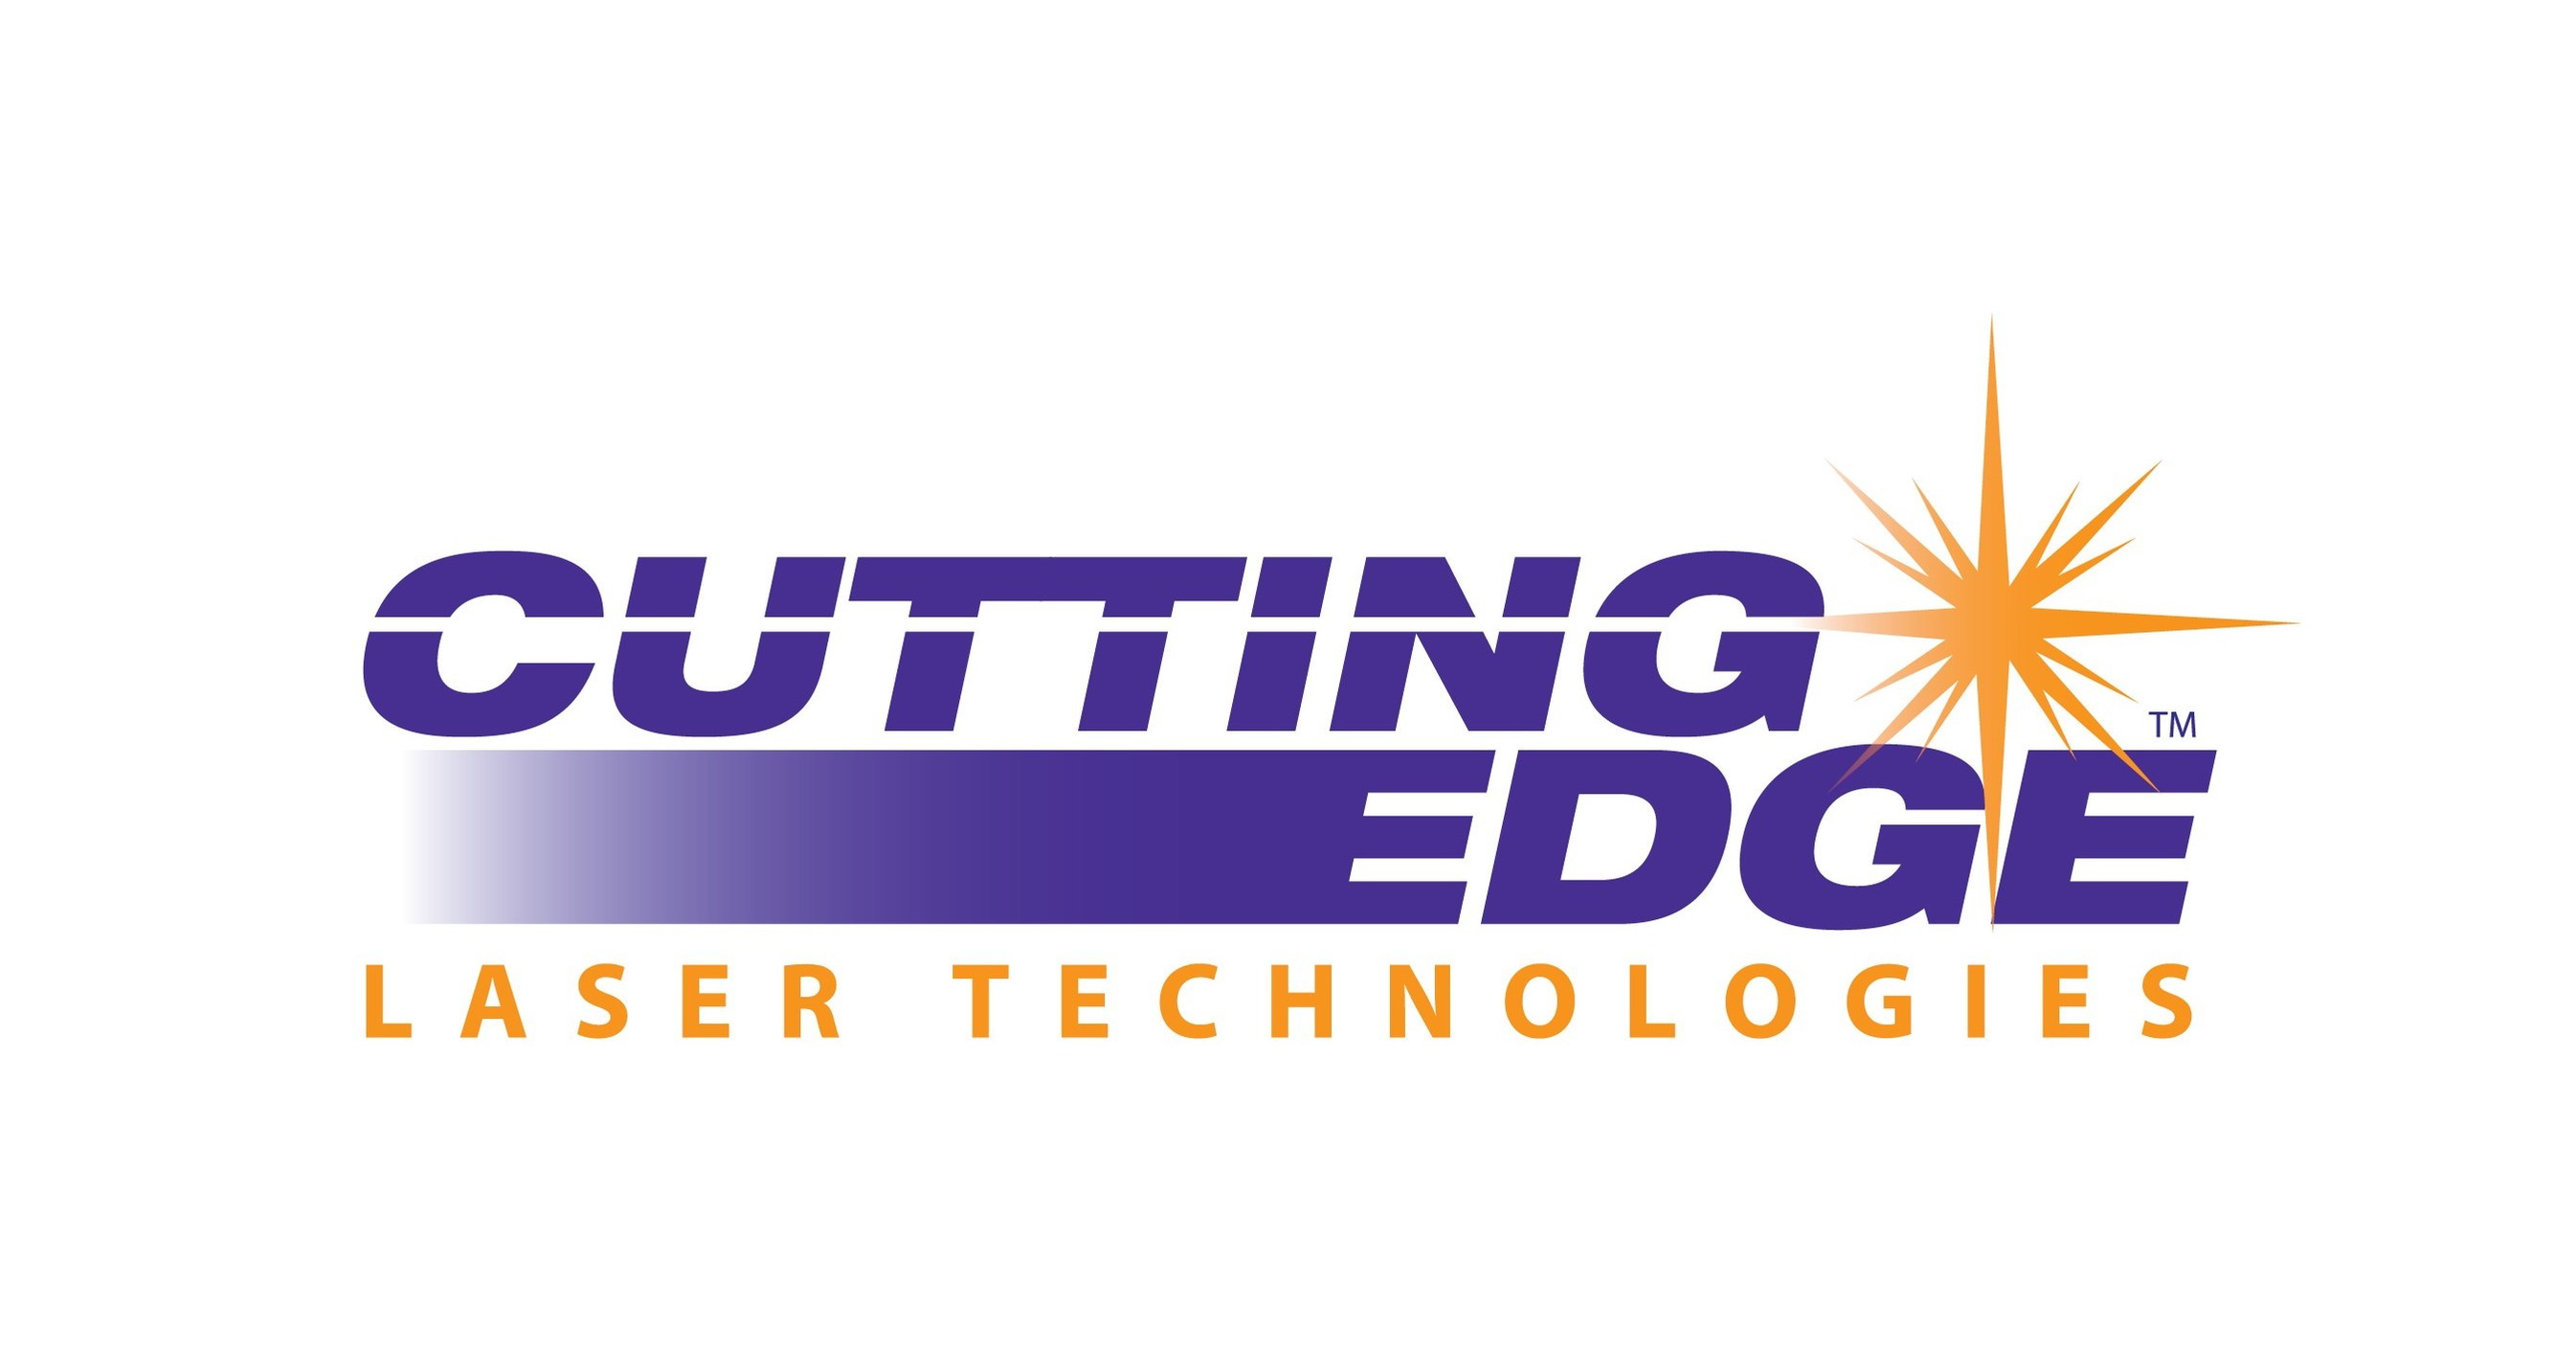 Patterson Veterinary Partners With Cutting Edge Laser